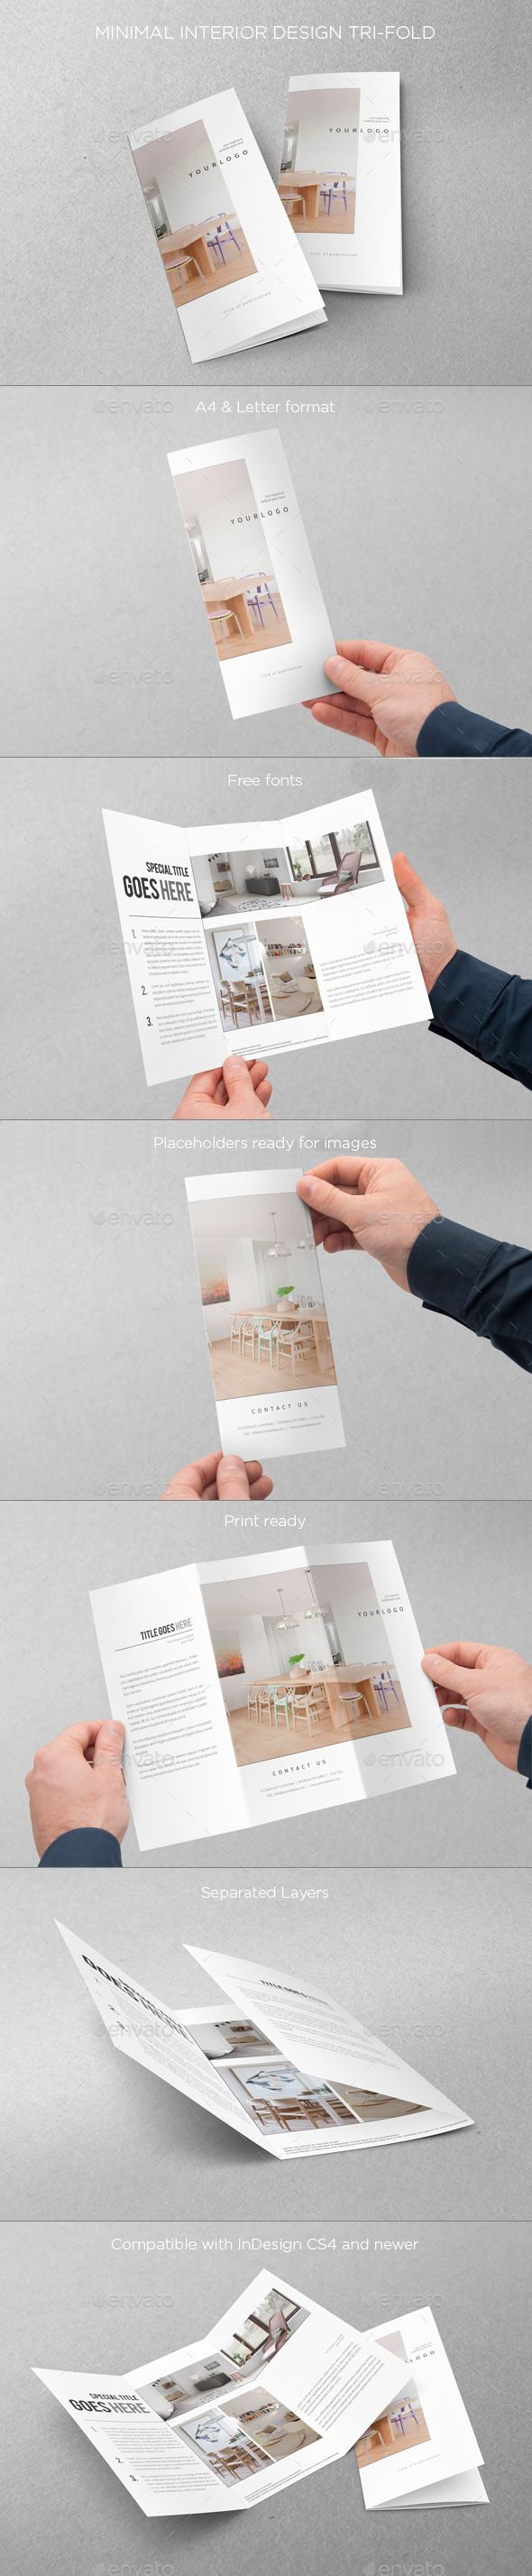 Minimal Interior Design Trifold  #brochure #business • Click here to download ! http://graphicriver.net/item/minimal-interior-design-trifold/8989296?ref=pxcr